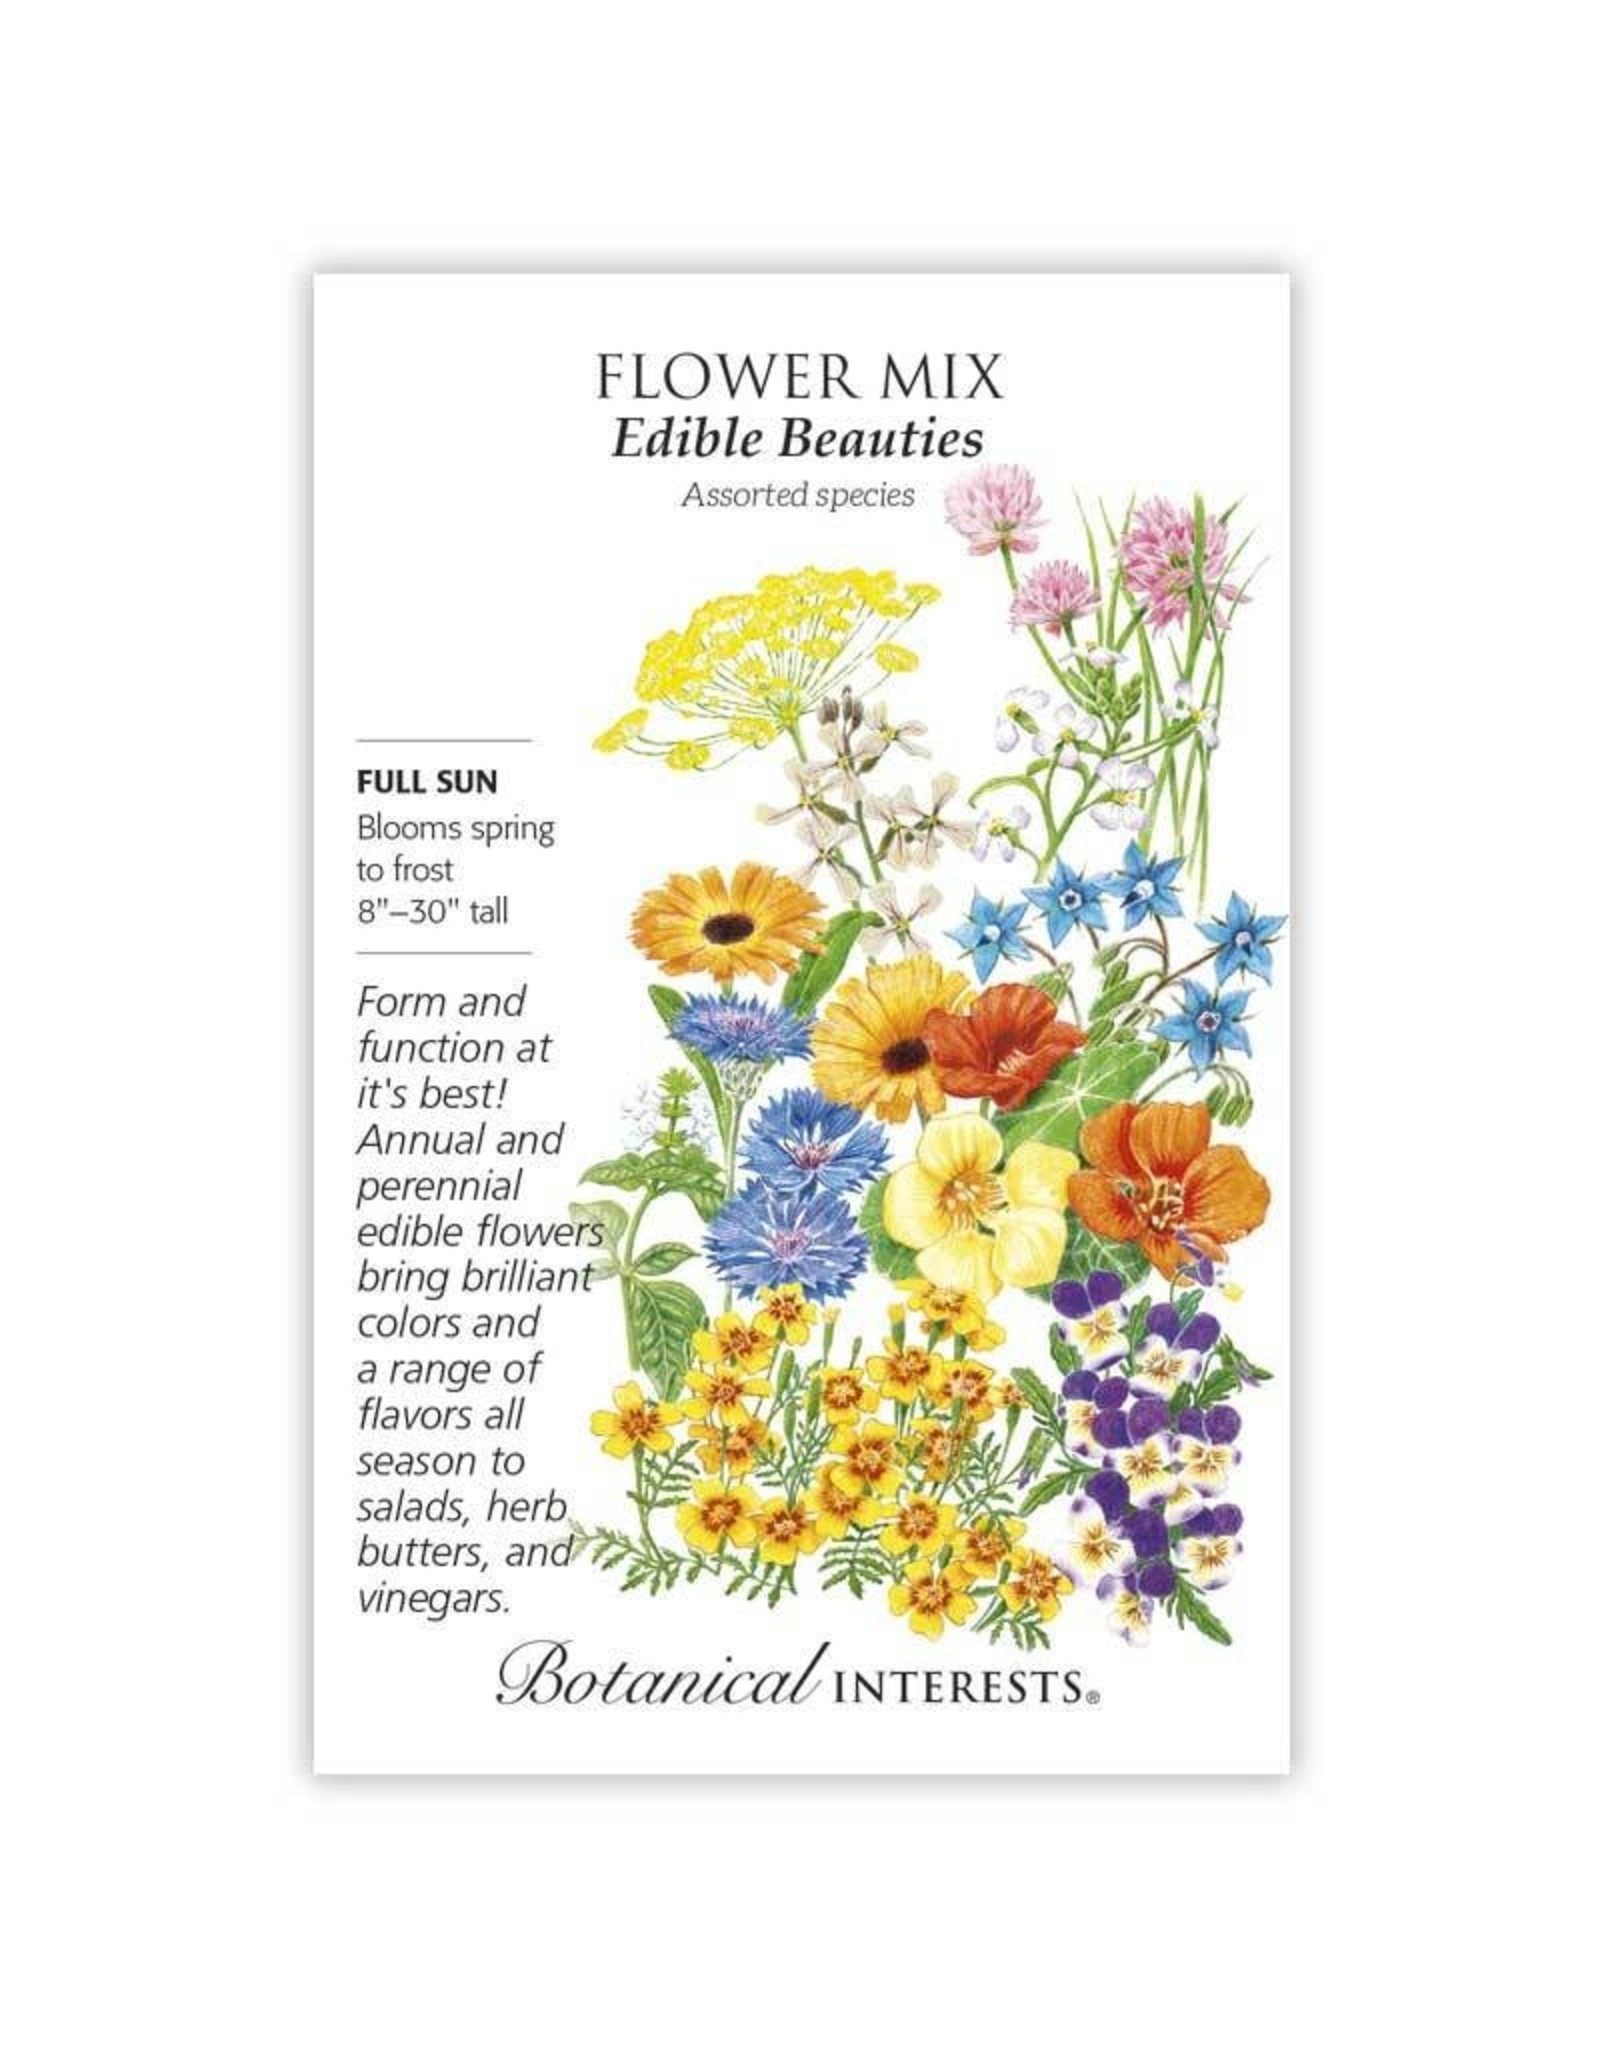 Seeds - Flower Mix Edible Beauties, Large